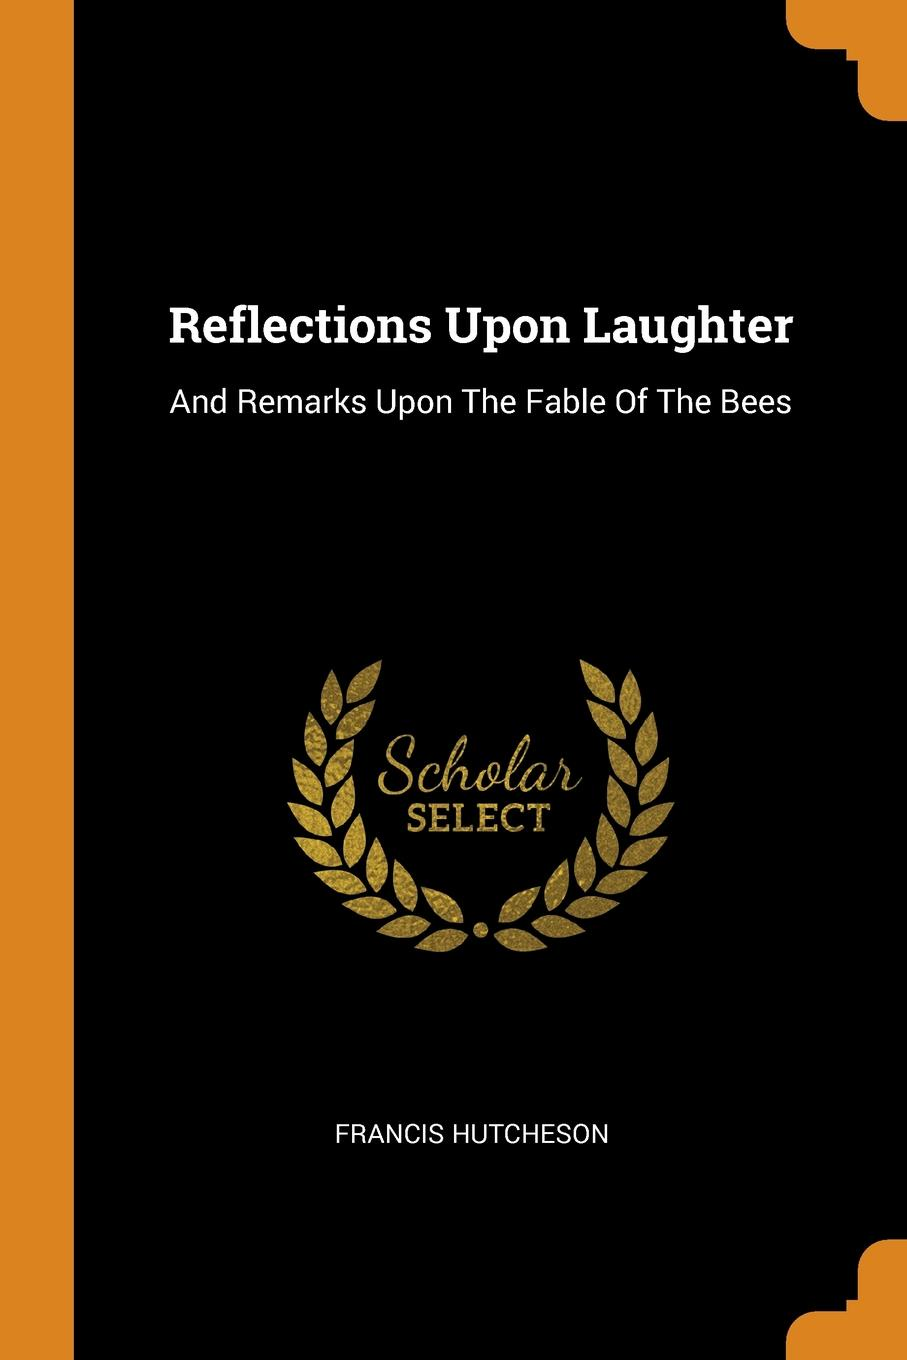 Francis Hutcheson Reflections Upon Laughter. And Remarks Upon The Fable Of The Bees